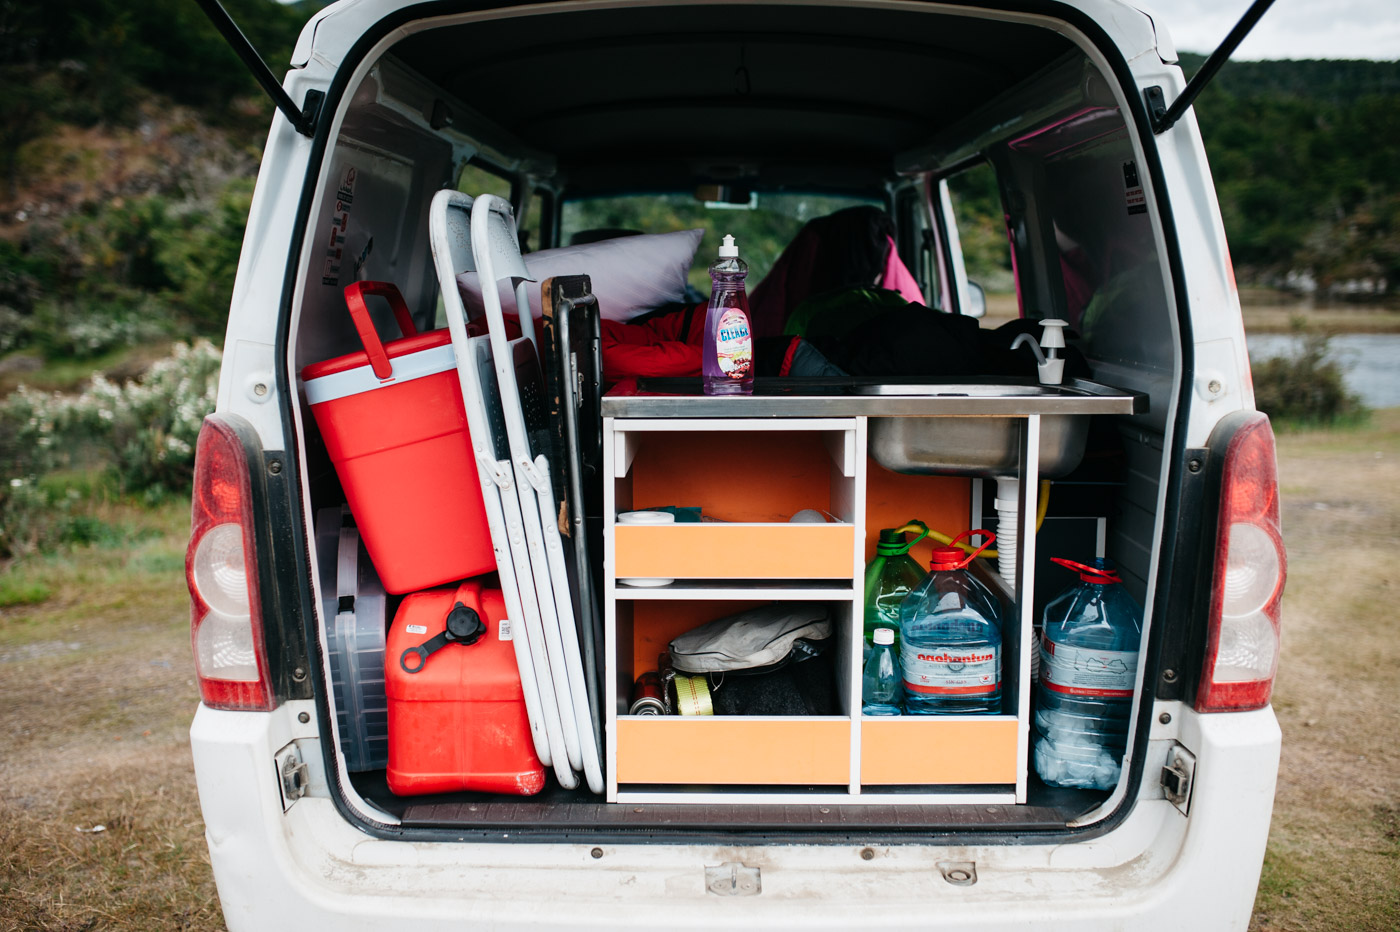 Wicked SouthAmerica Campervan Review Interiour-Kitchen and Storage